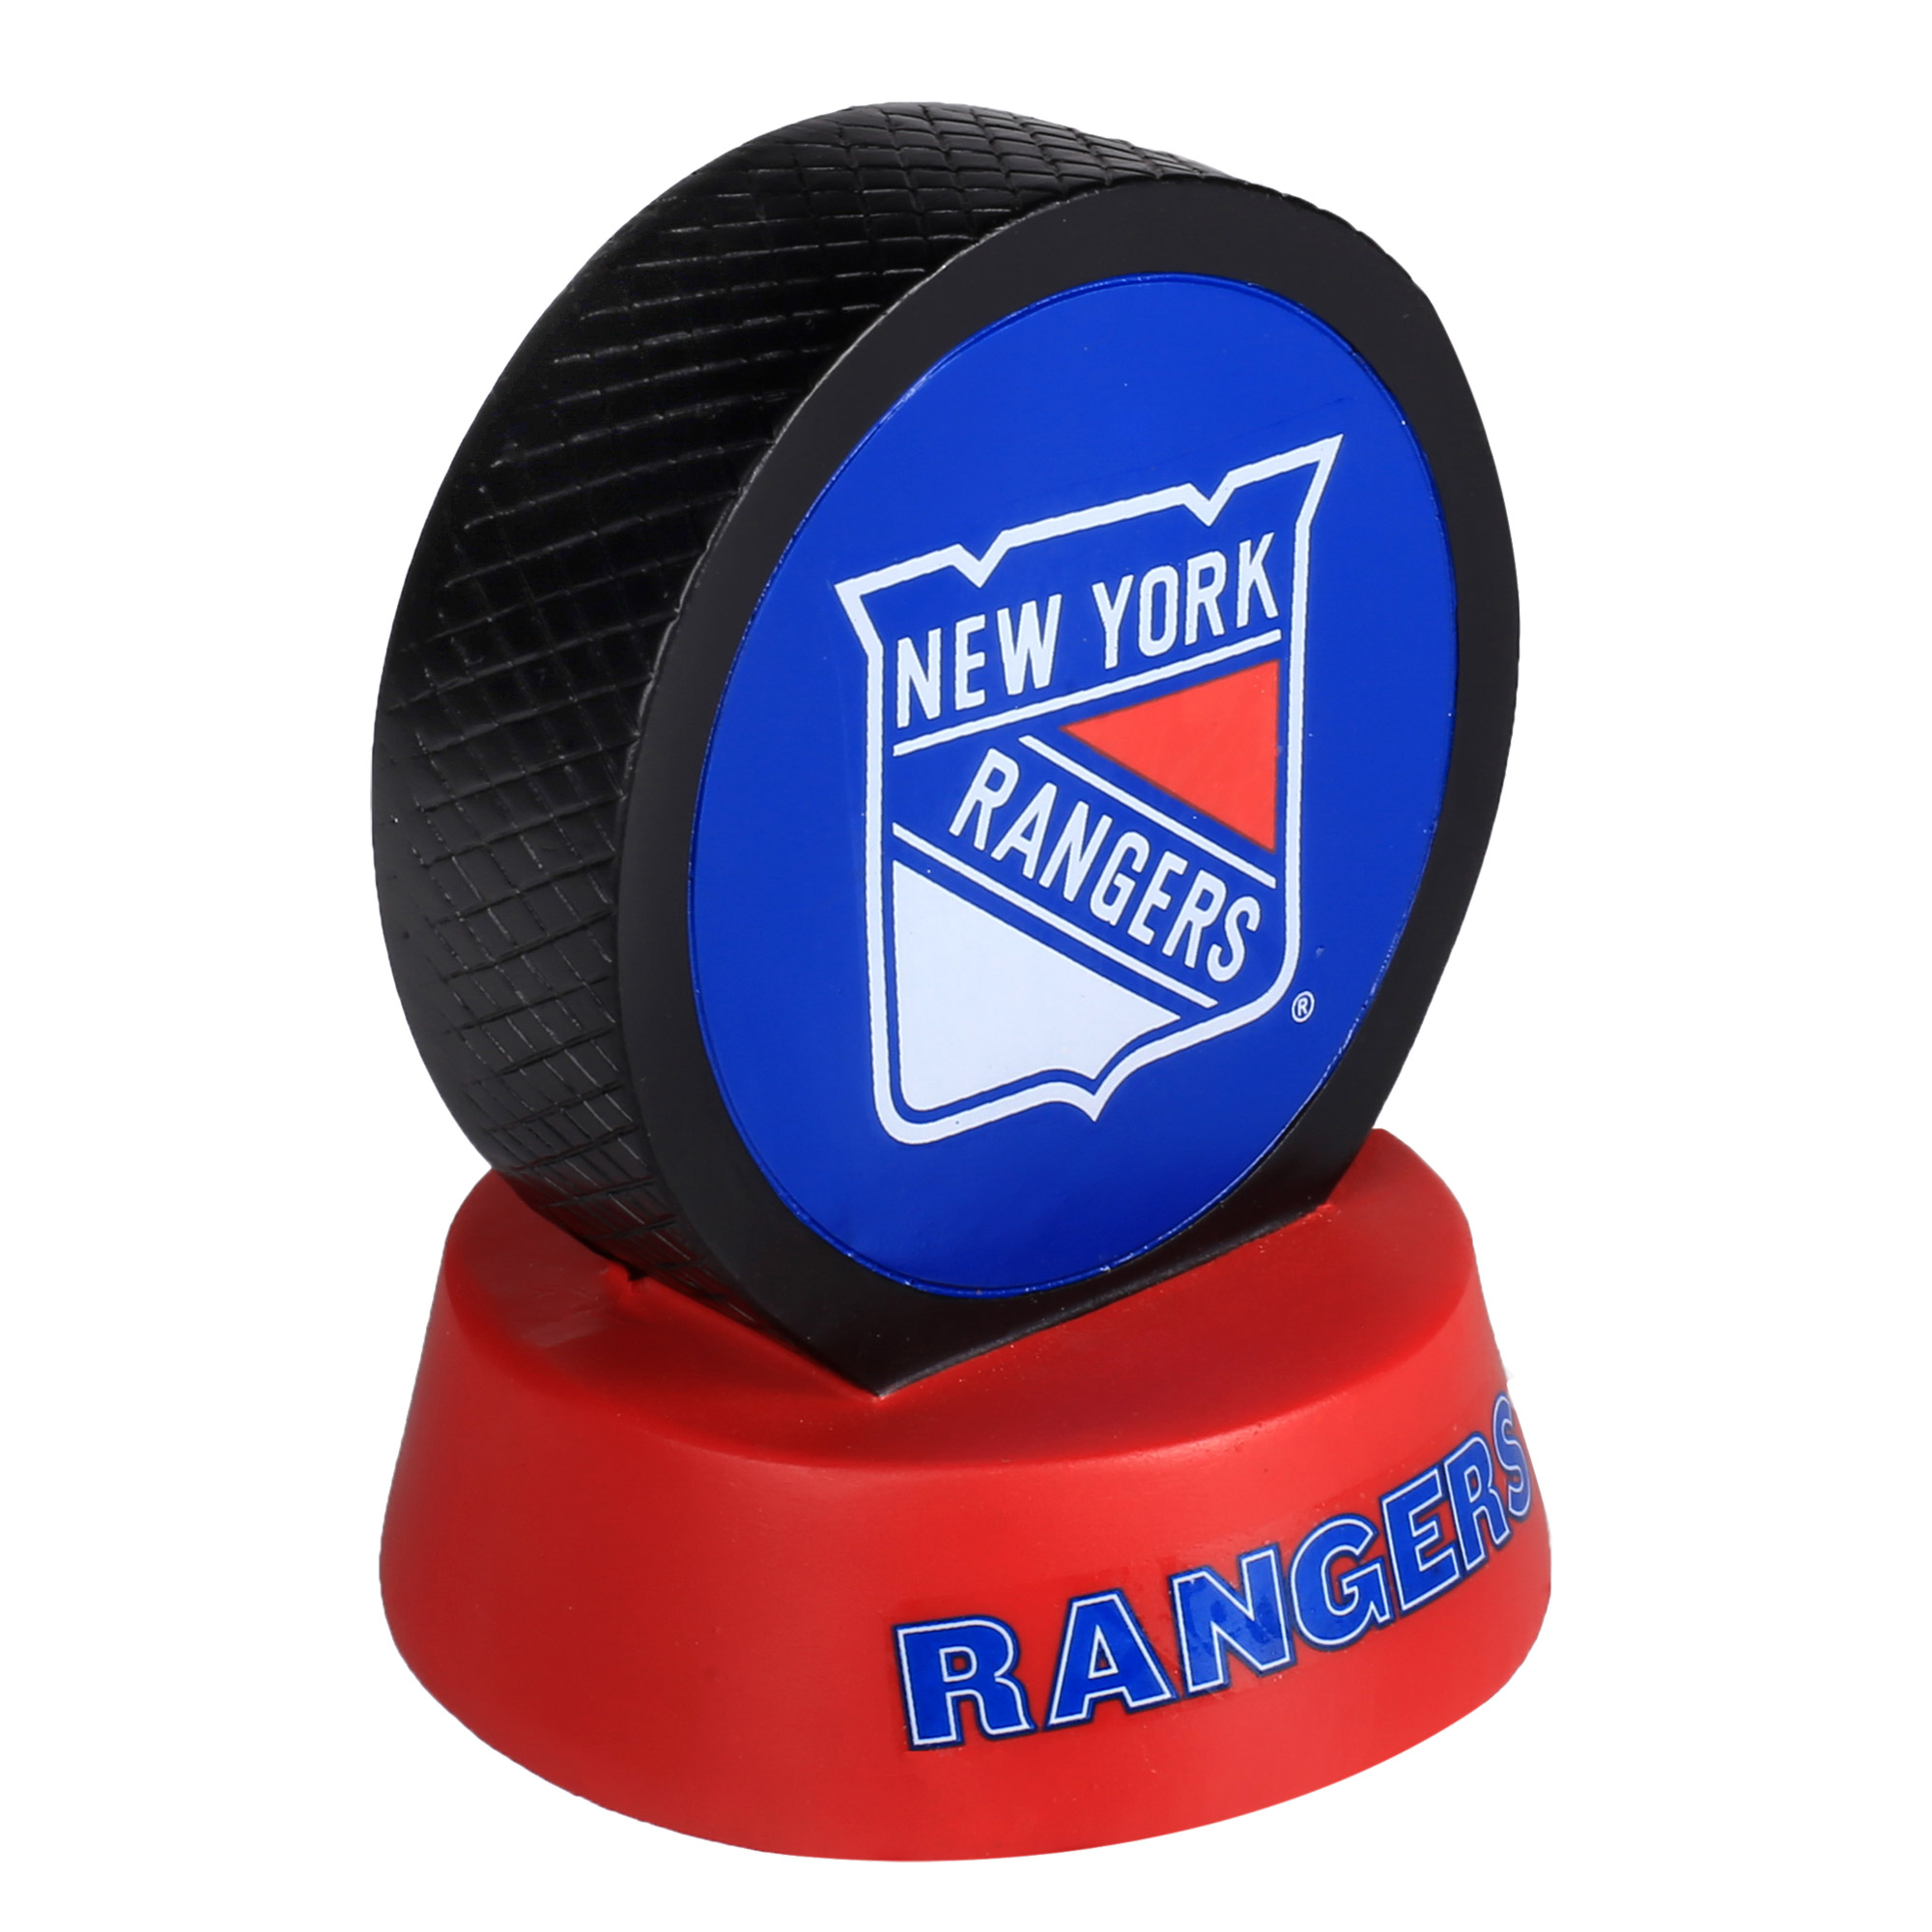 New York Rangers Hockey Puck Display Paperweight - No Size